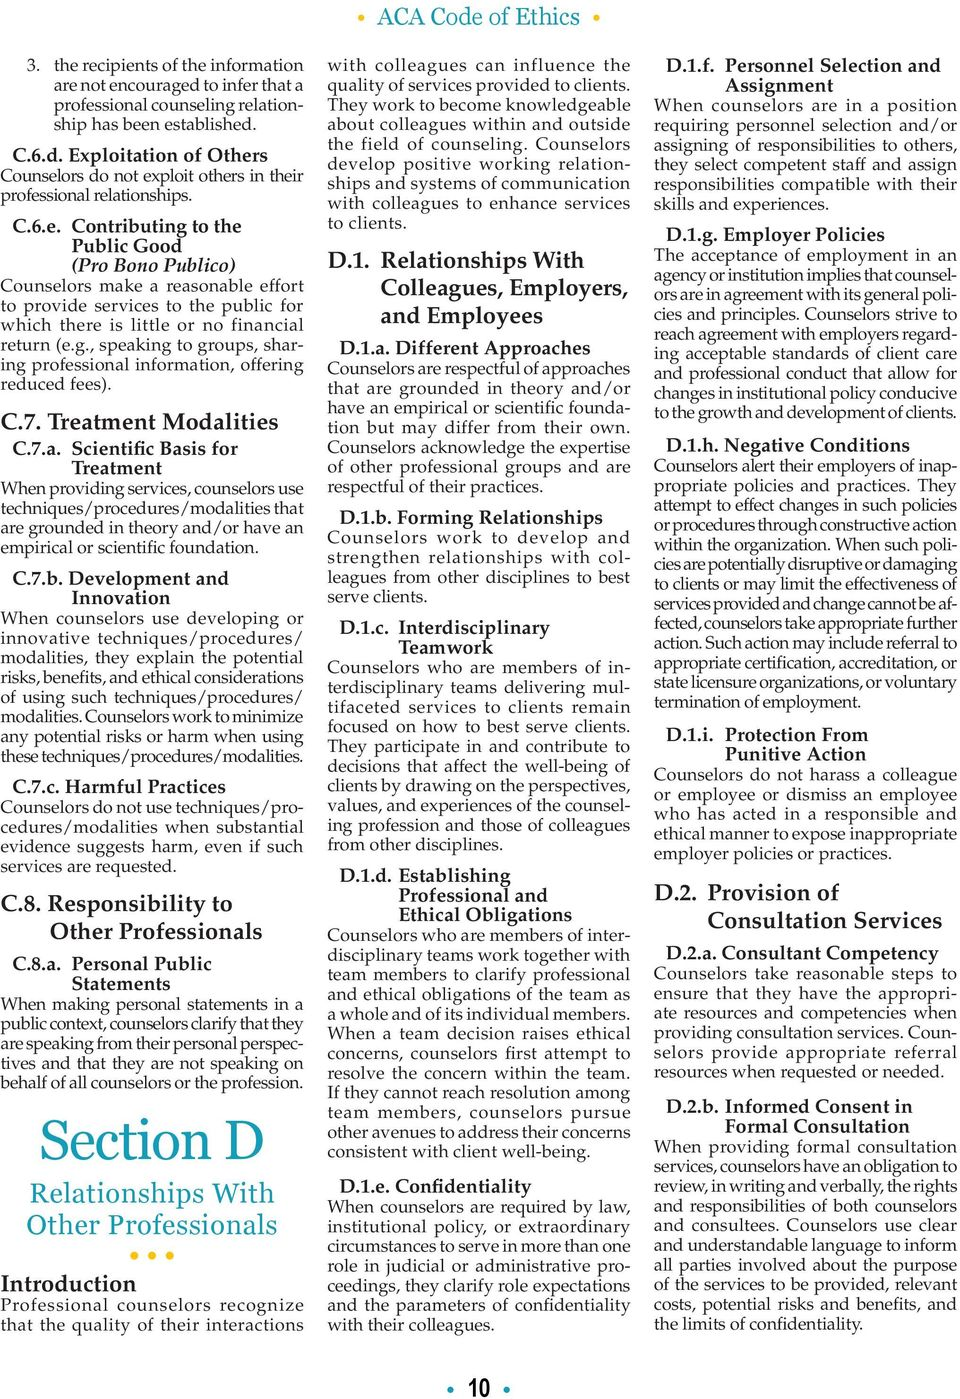 C.7. Treatment Modalities C.7.a. Scientific Basis for Treatment When providing services, counselors use techniques/procedures/modalities that are grounded in theory and/or have an empirical or scientific foundation.